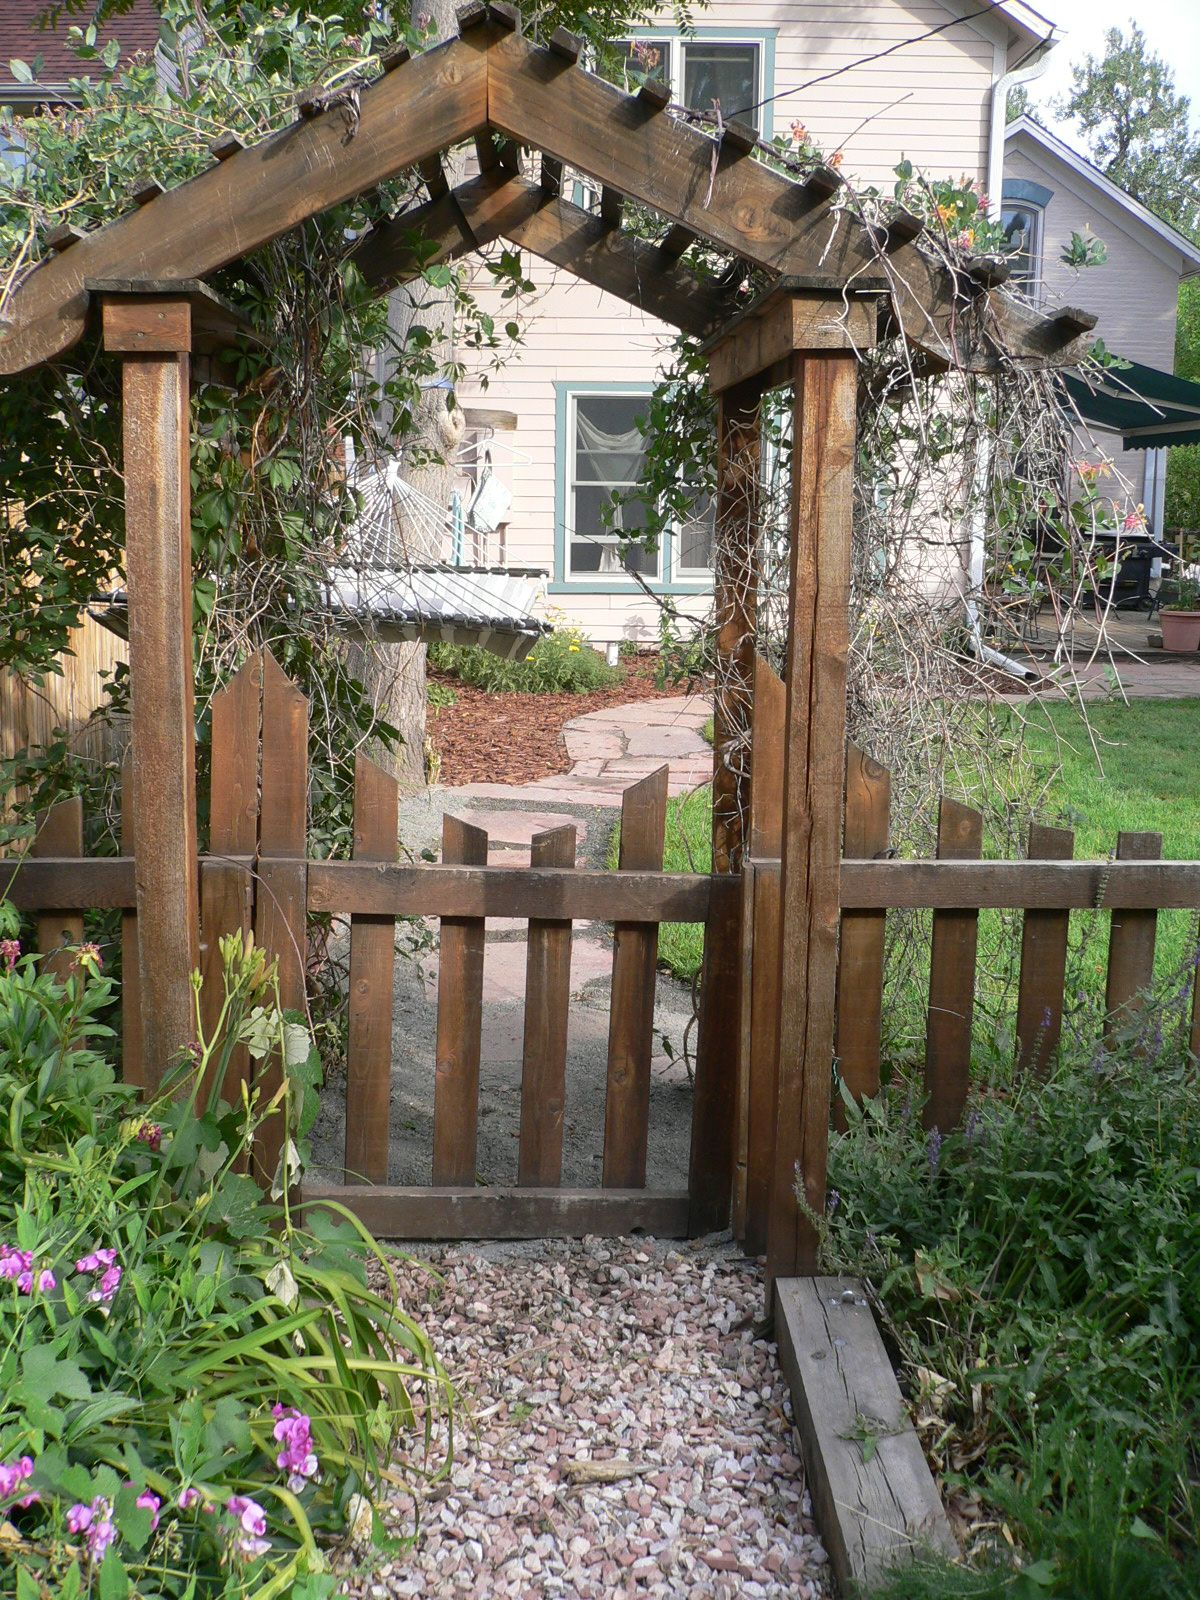 Superior Gate Arches | Garden Arch For Gate Entrance